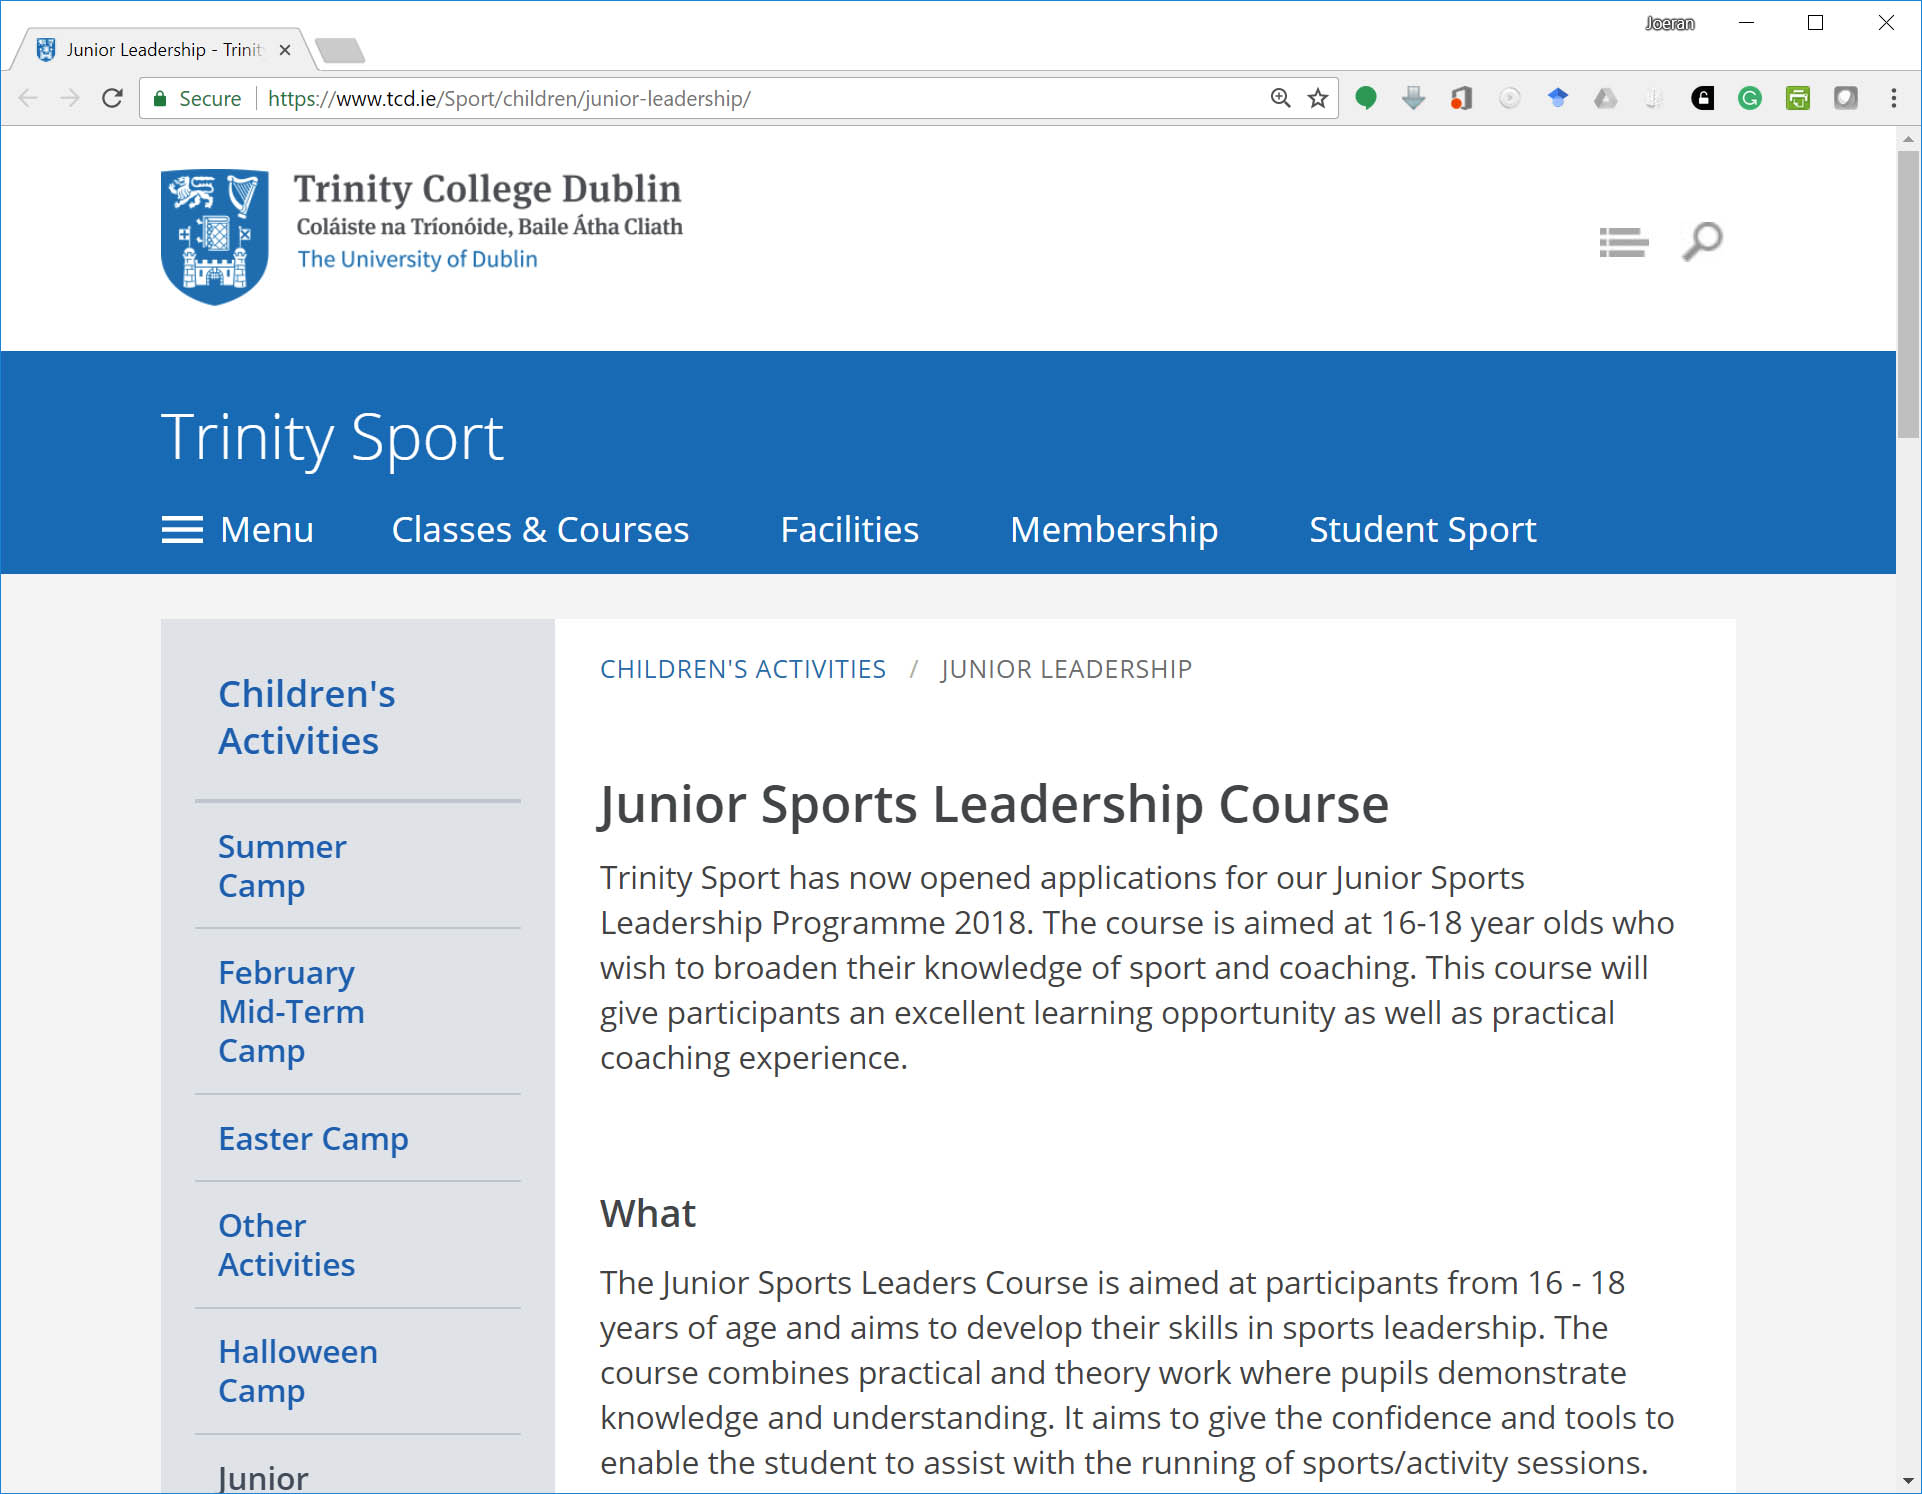 TCD Dublin Junior Sports Leadership (Prof Beel, Machine Learning and Recommender Systems Group)